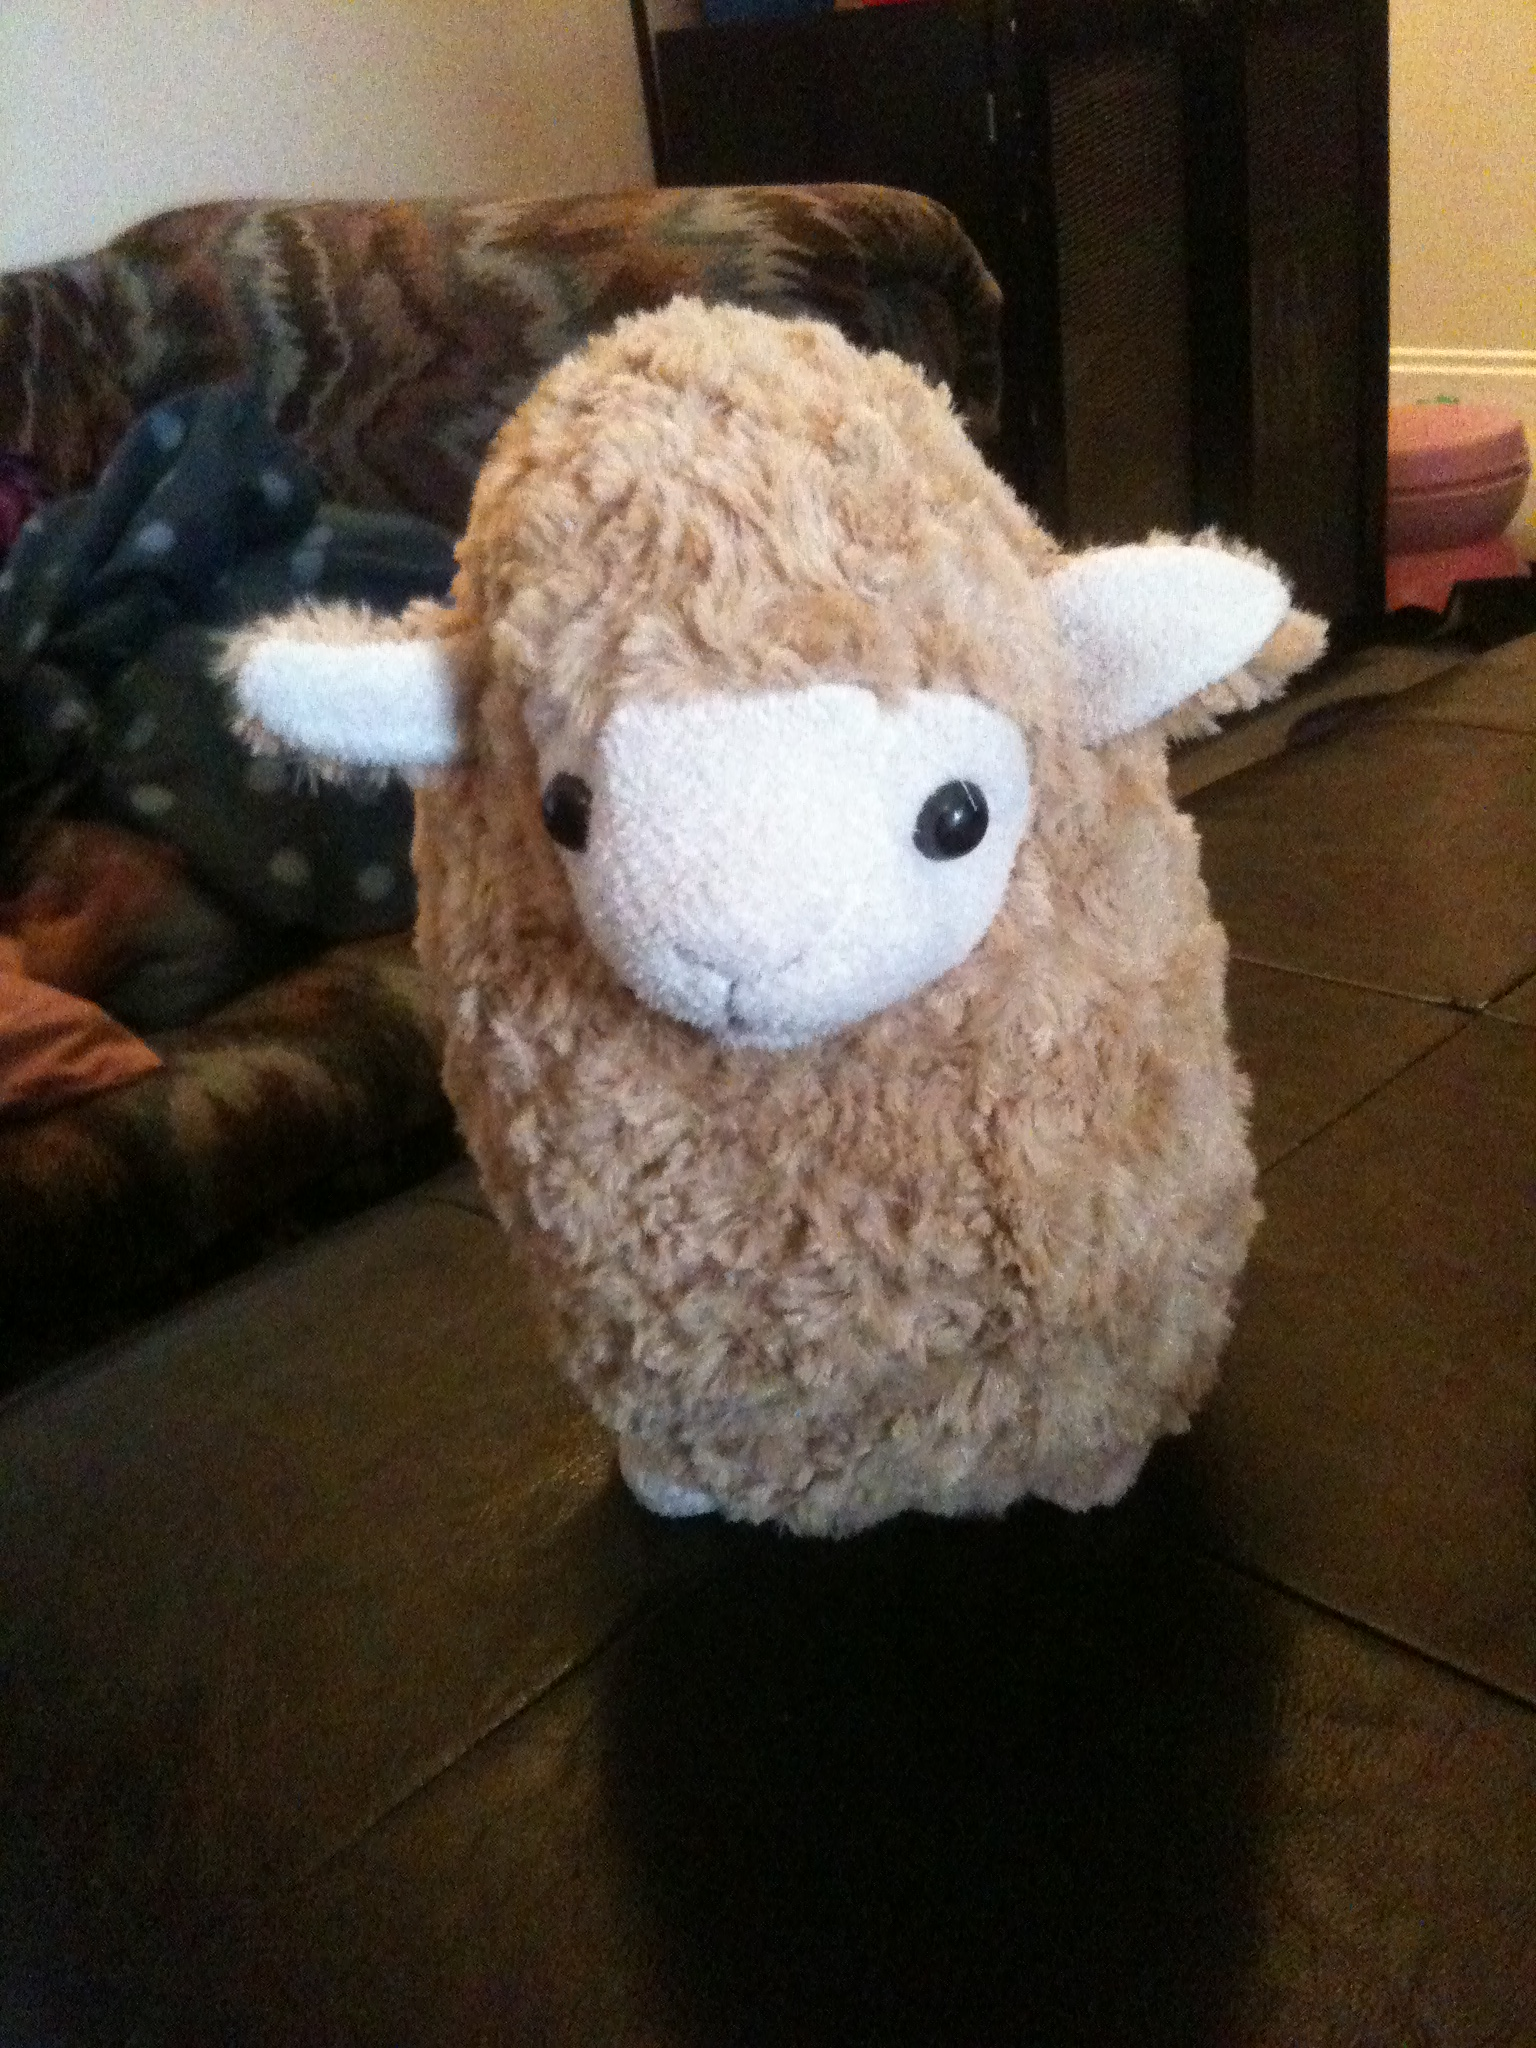 The Sheep I got them